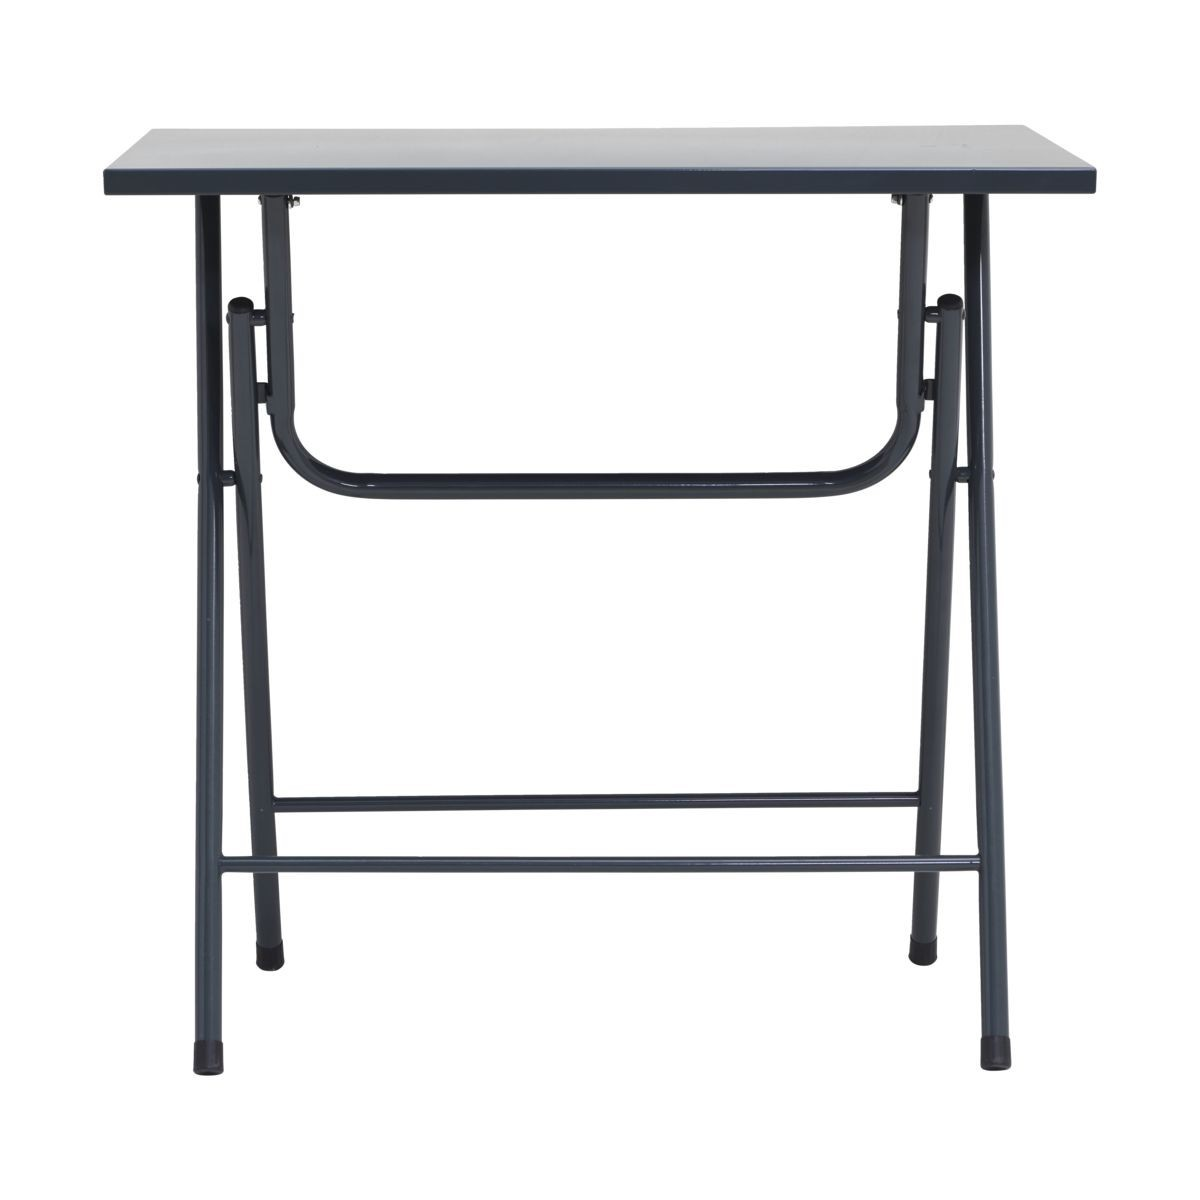 Petite Table De Bureau Petite Table De Bureau Pliable House Doctor Fold It Kdesign